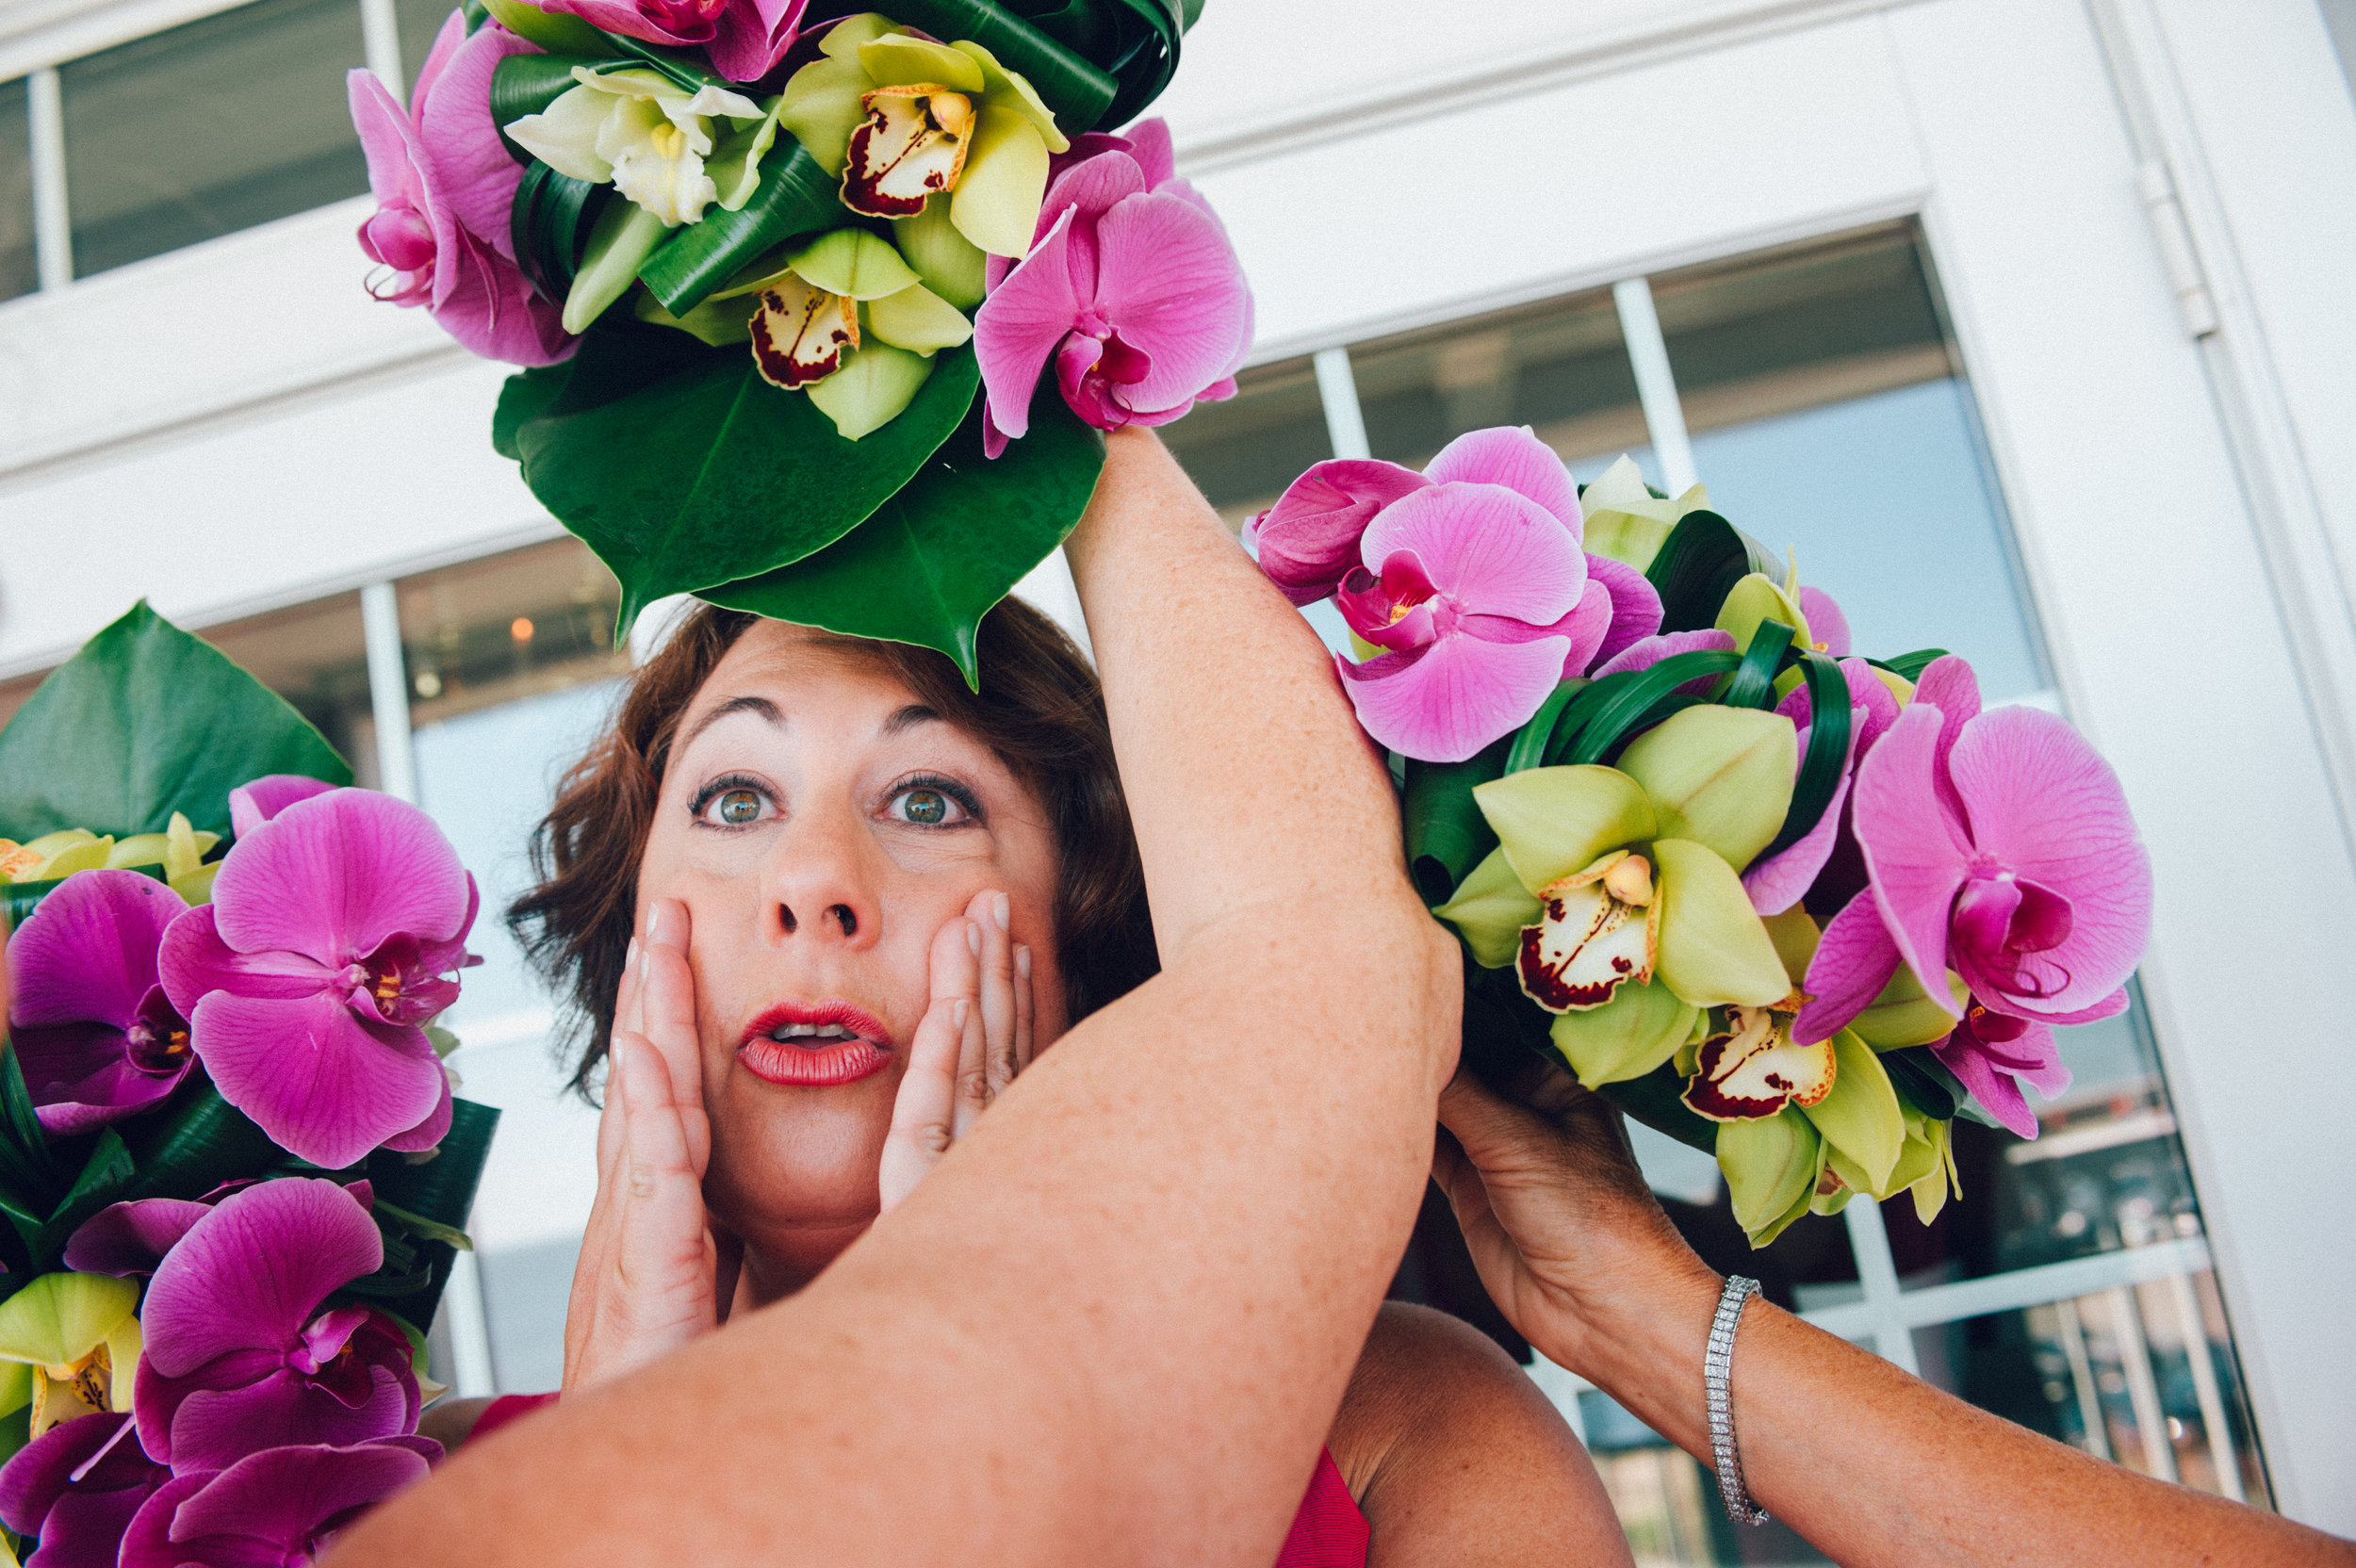 Woman at wedding surrounded by purple orchids